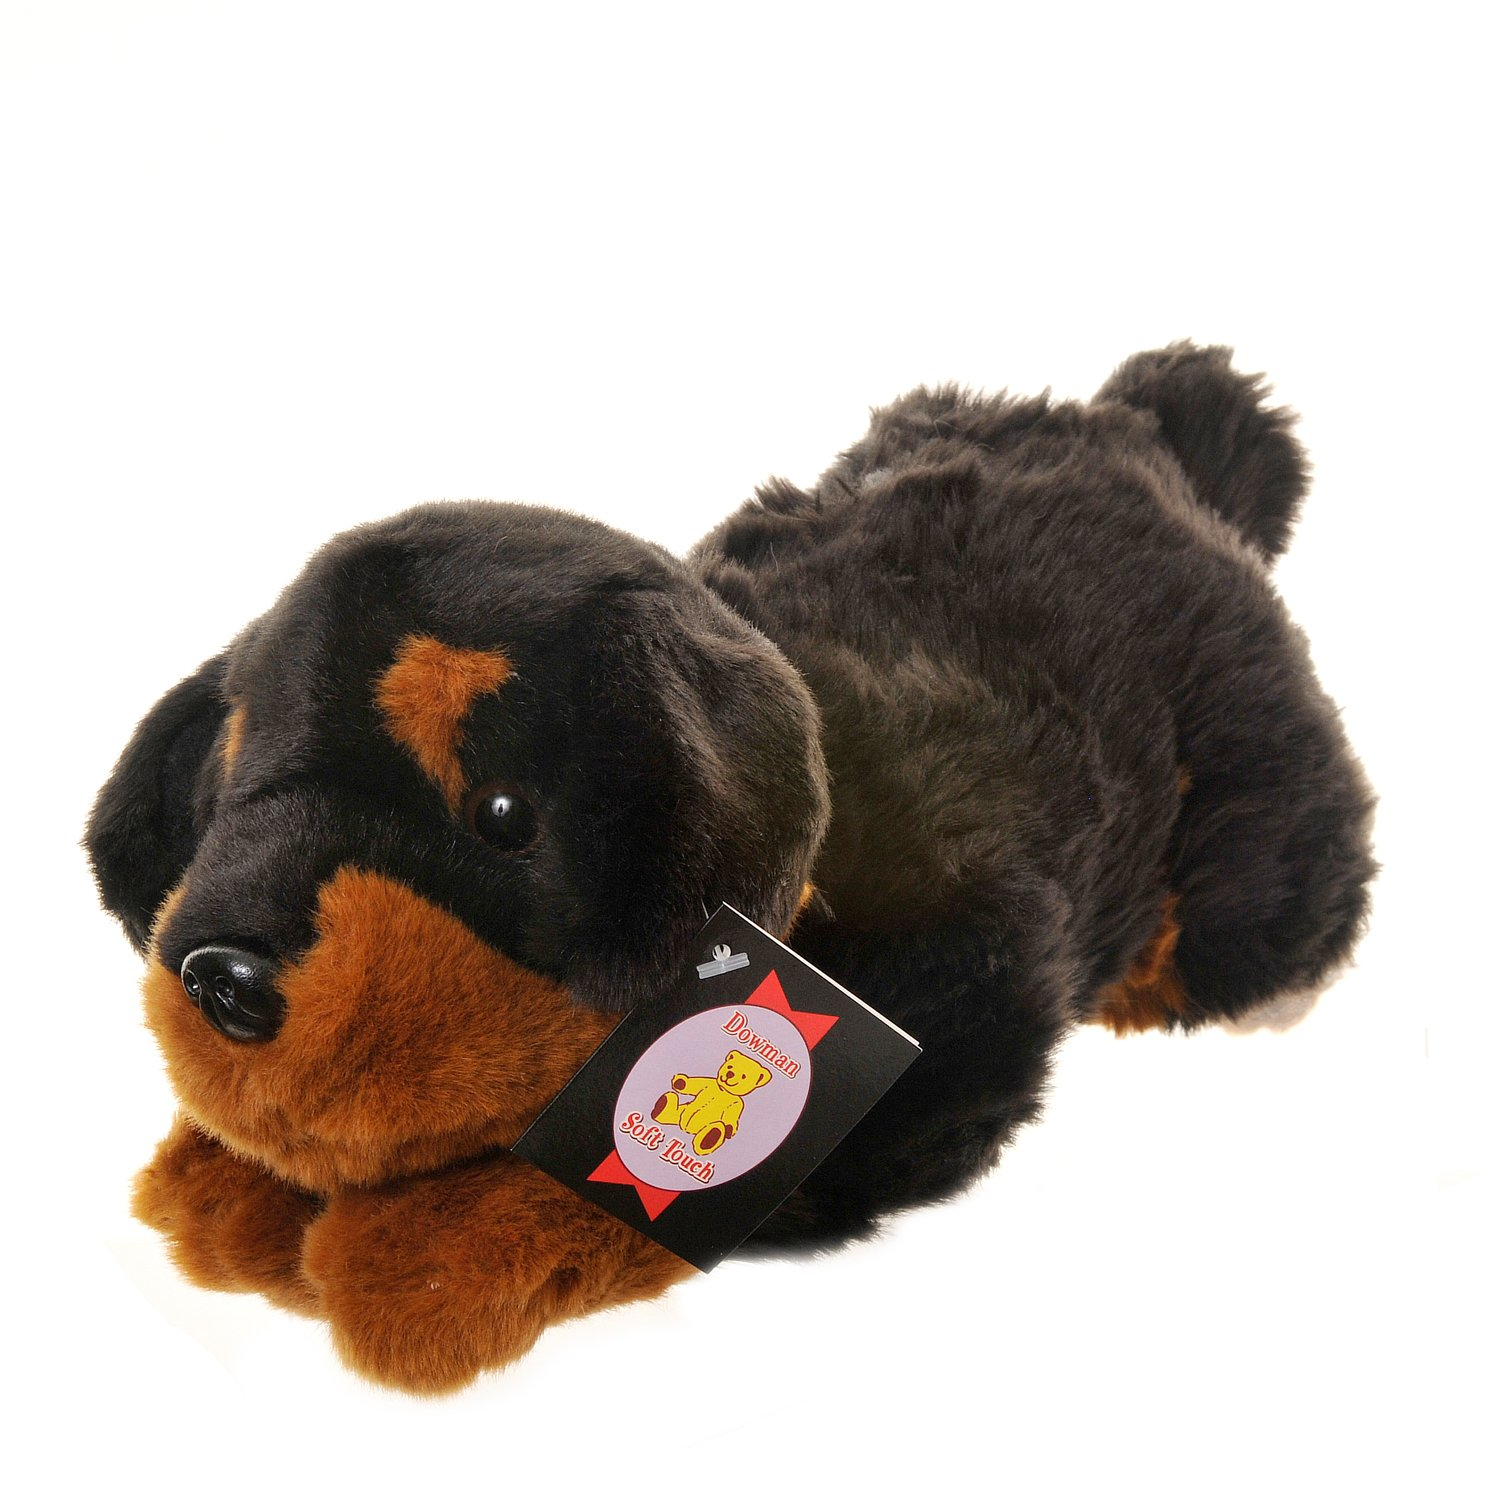 Bigg Dog Toy : Rottweiler toys wow